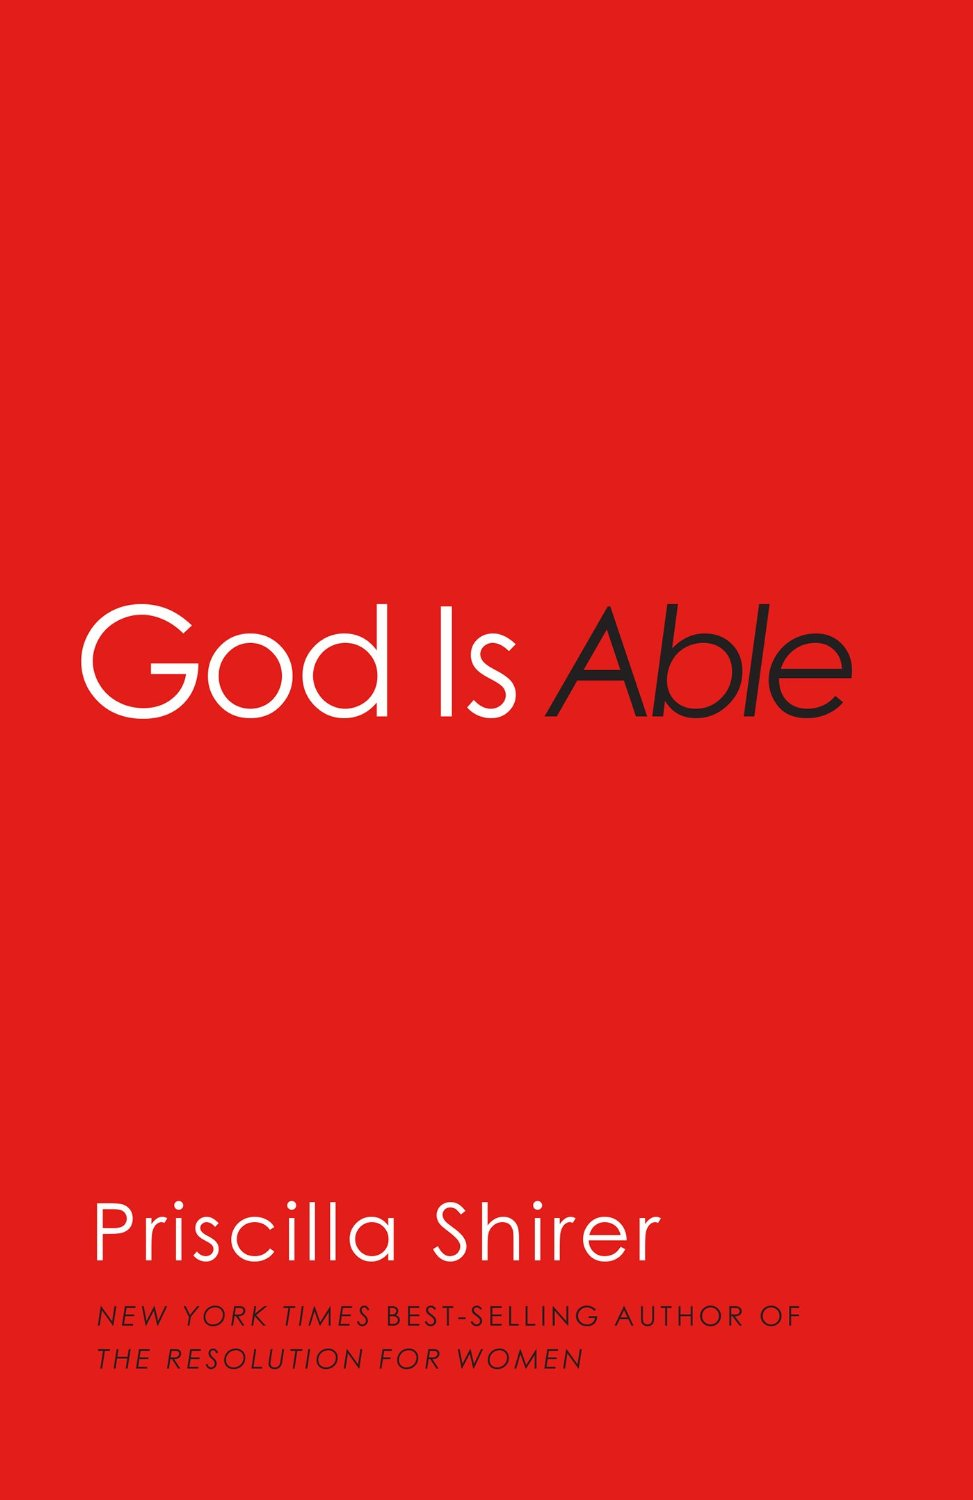 God is Able by Priscilla Shirer